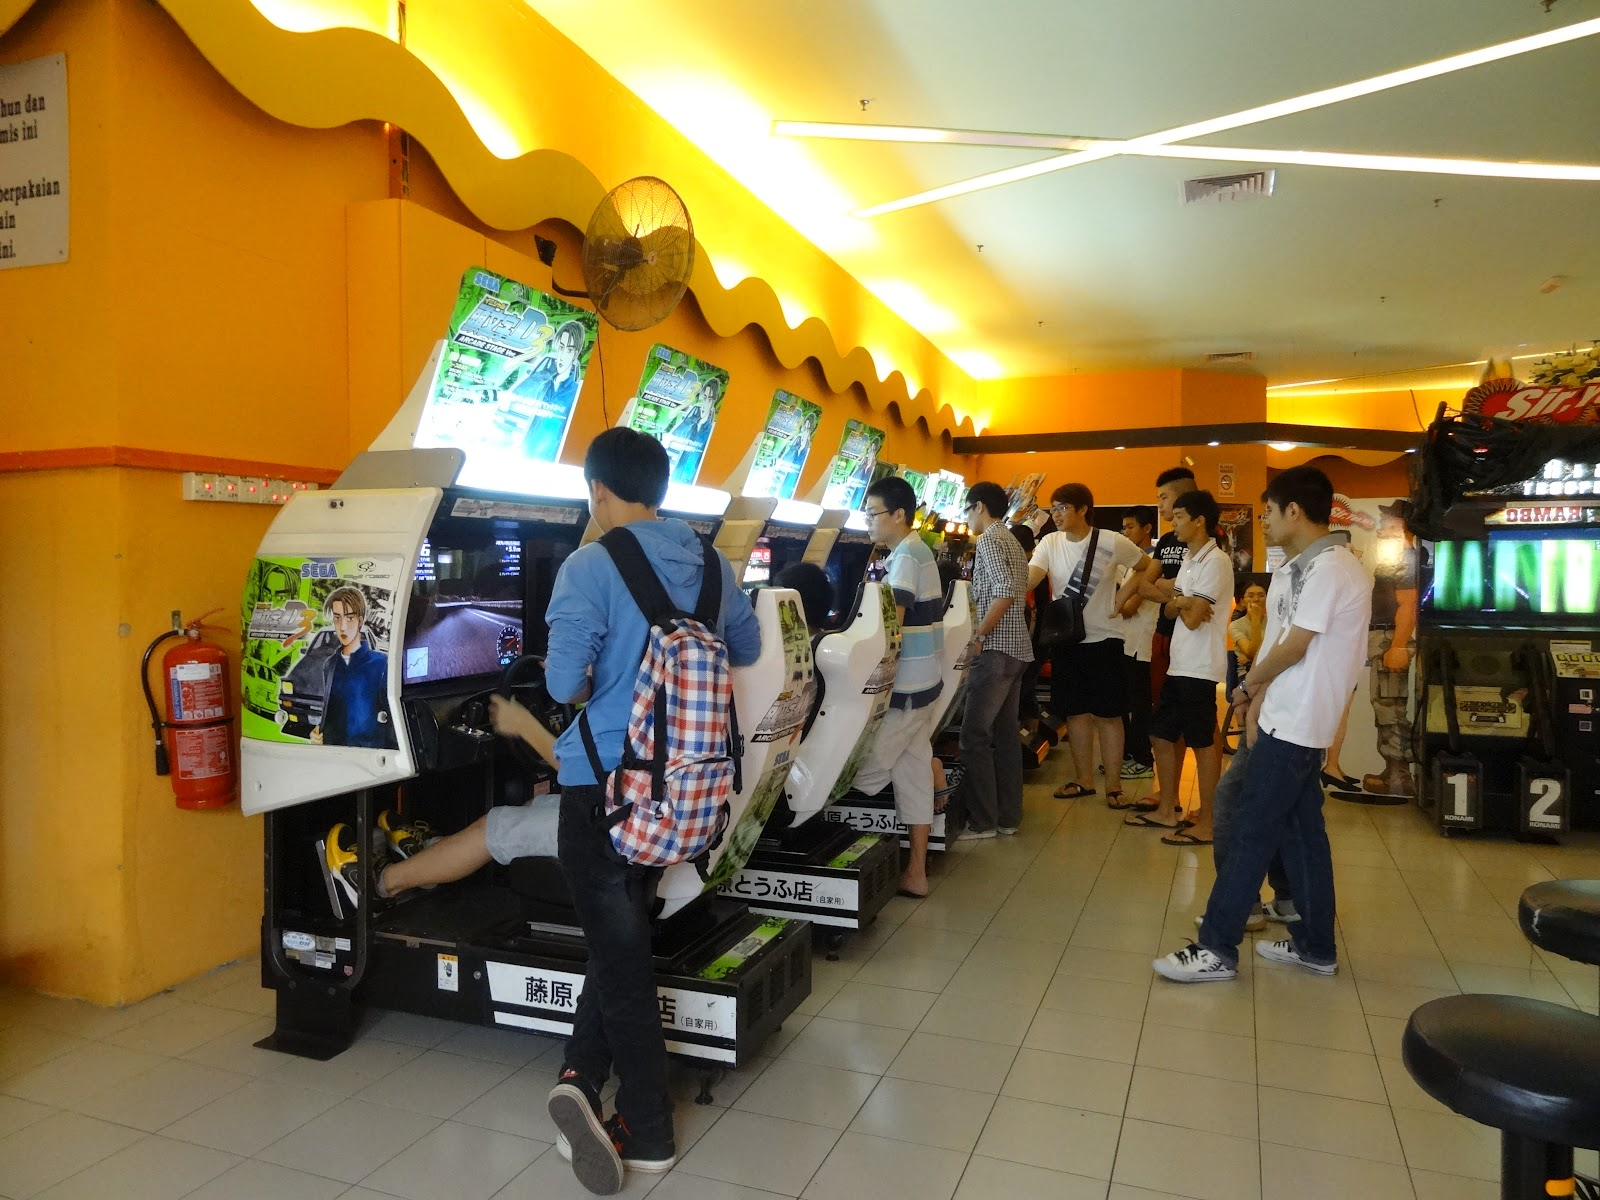 Roller skate shoes penang - Movie Theatres It S Air Conditioned And I Don T Have Referee The Kids For A Blessed 1 5 Hours What S Not To Like Who Cares If The Plot Makes No Sense And